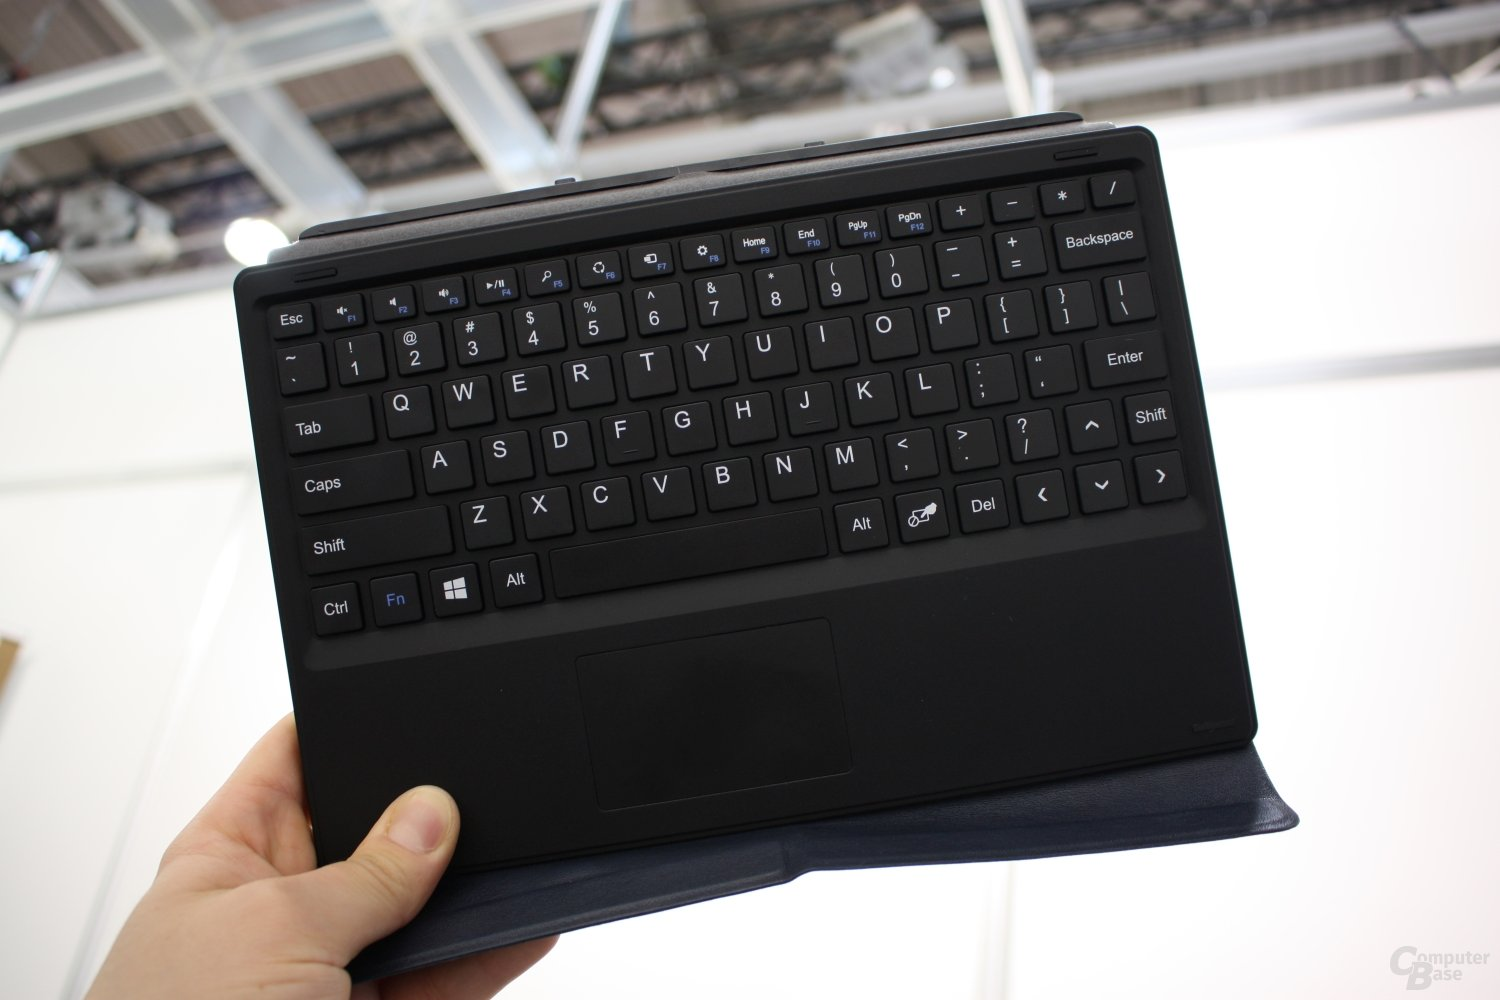 Schenker Tablet mit Bay Trail und Windows 8.1